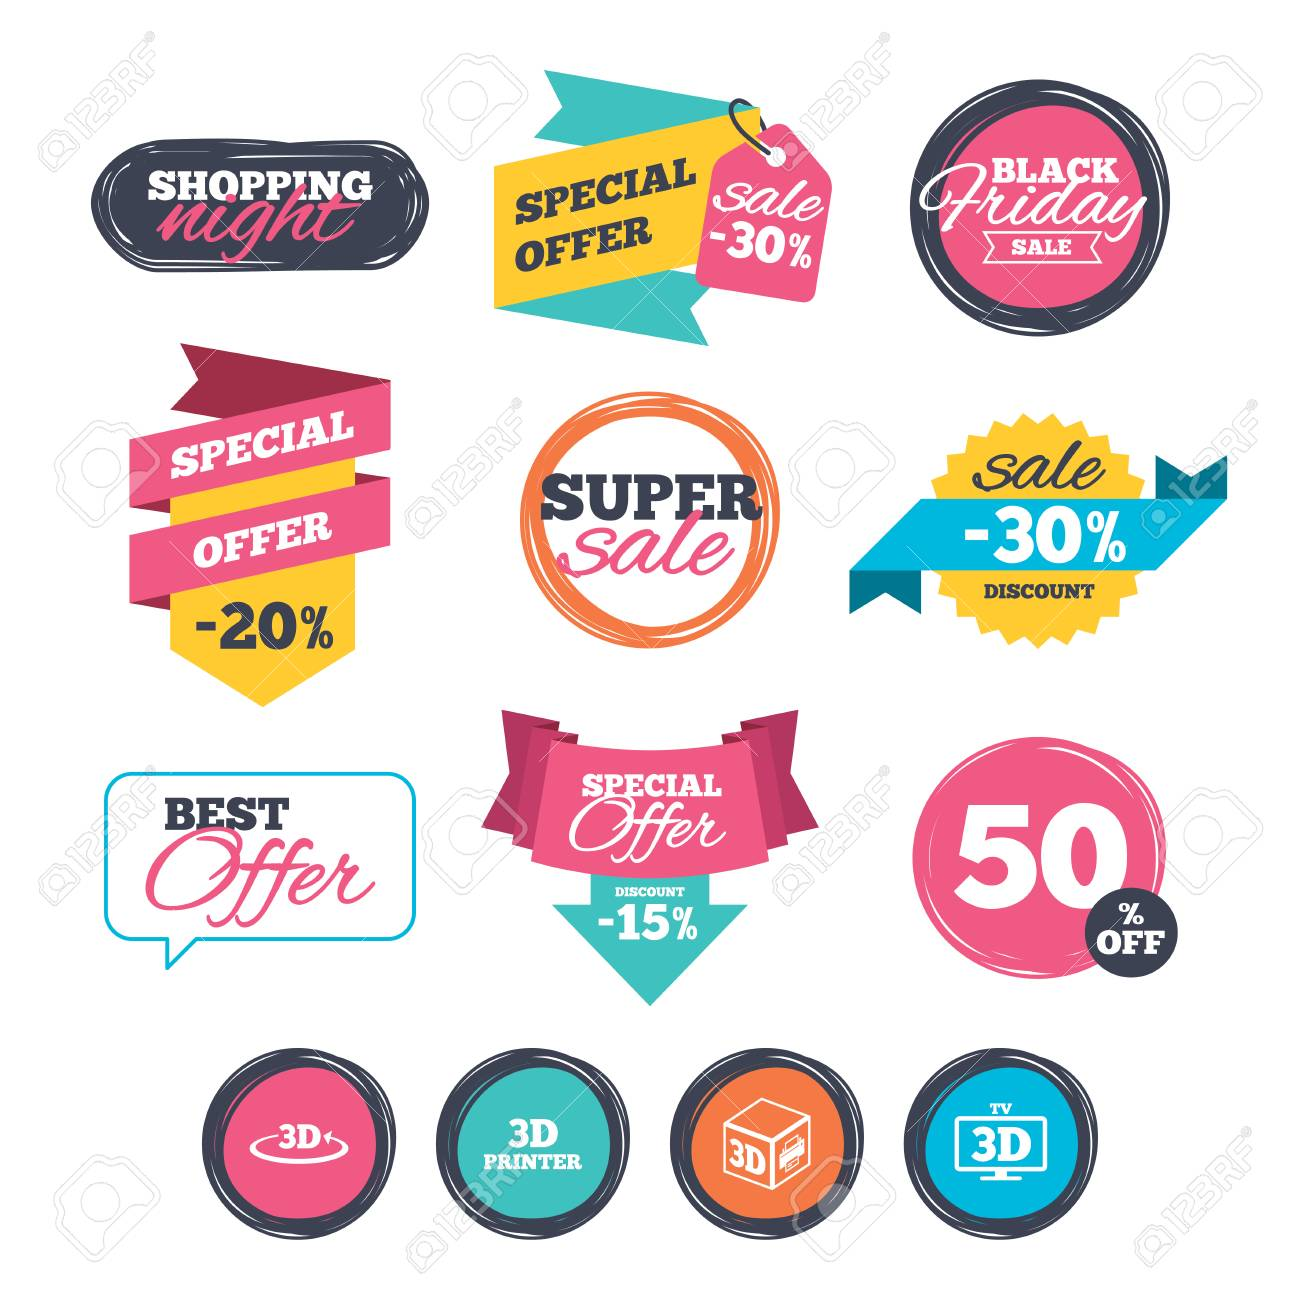 Sale stickers online shopping 3d technology icons printer rotation arrow sign symbols